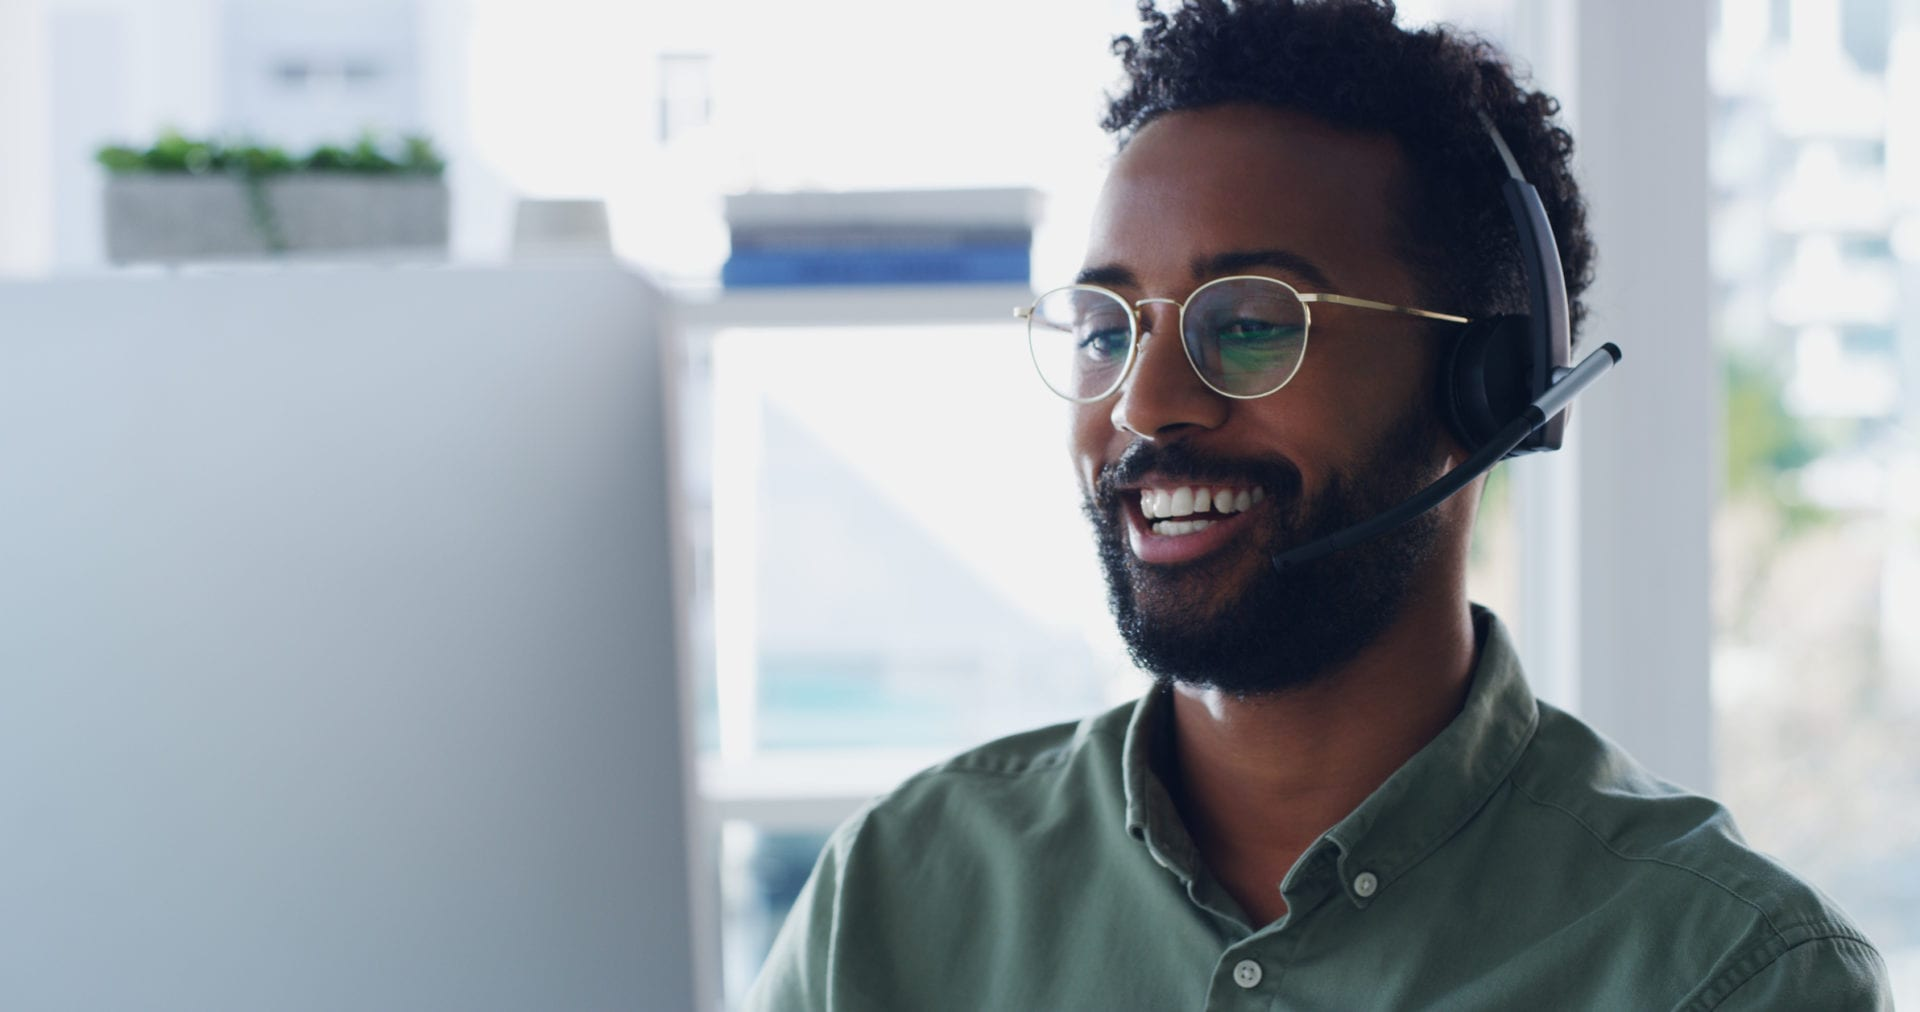 smiling customer service agent using CX technology to deliver personalized service